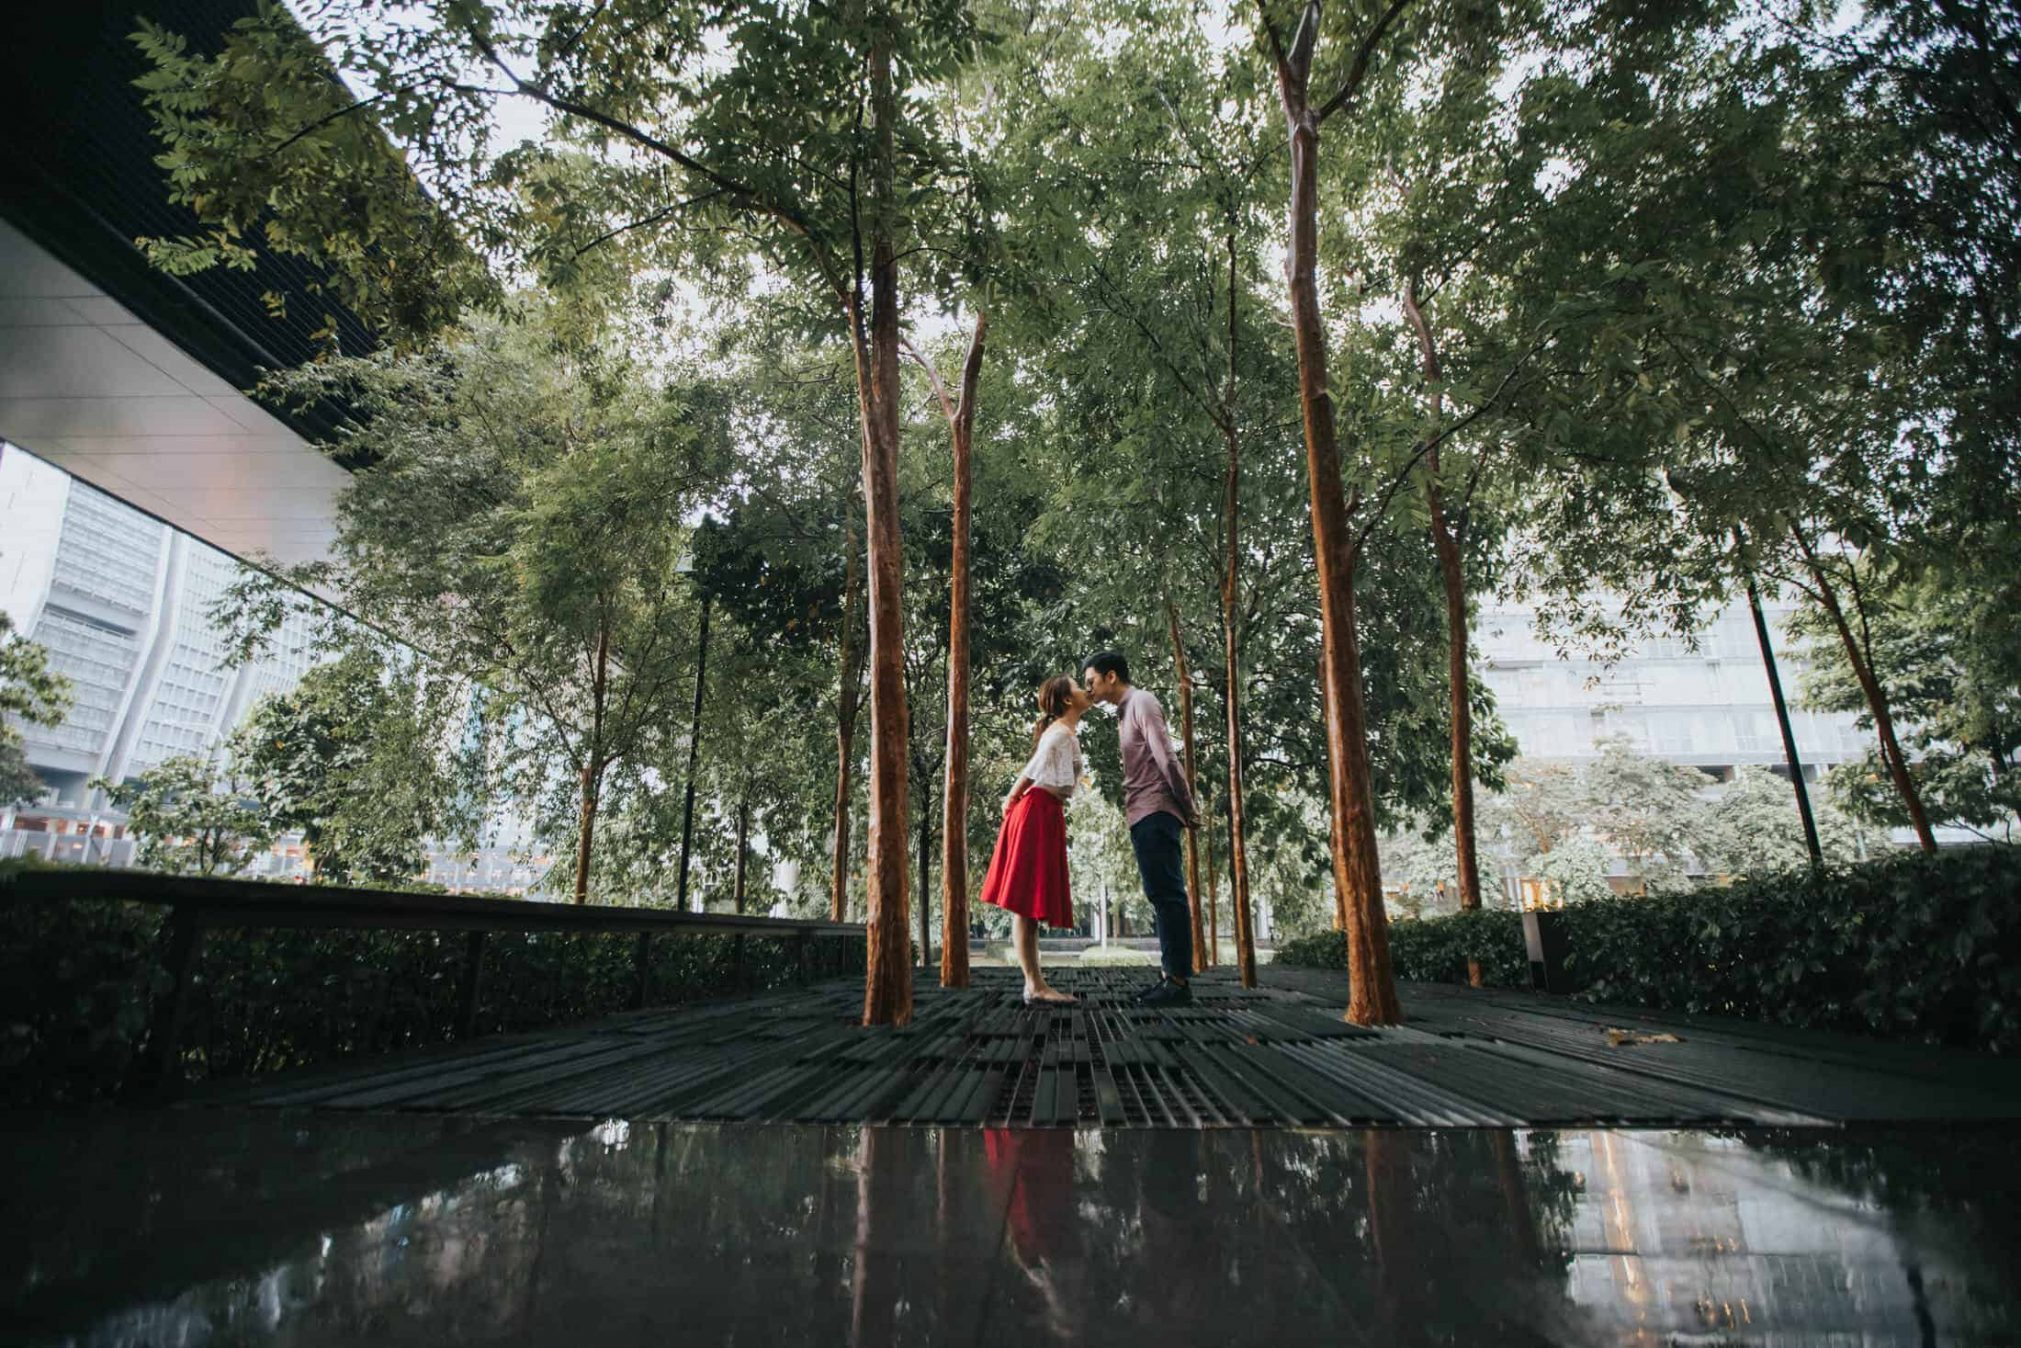 destination prewedding photography malaysia melbourne beach house bath red groom bride wedding photographer kuala lumpur Engagement Prewedding